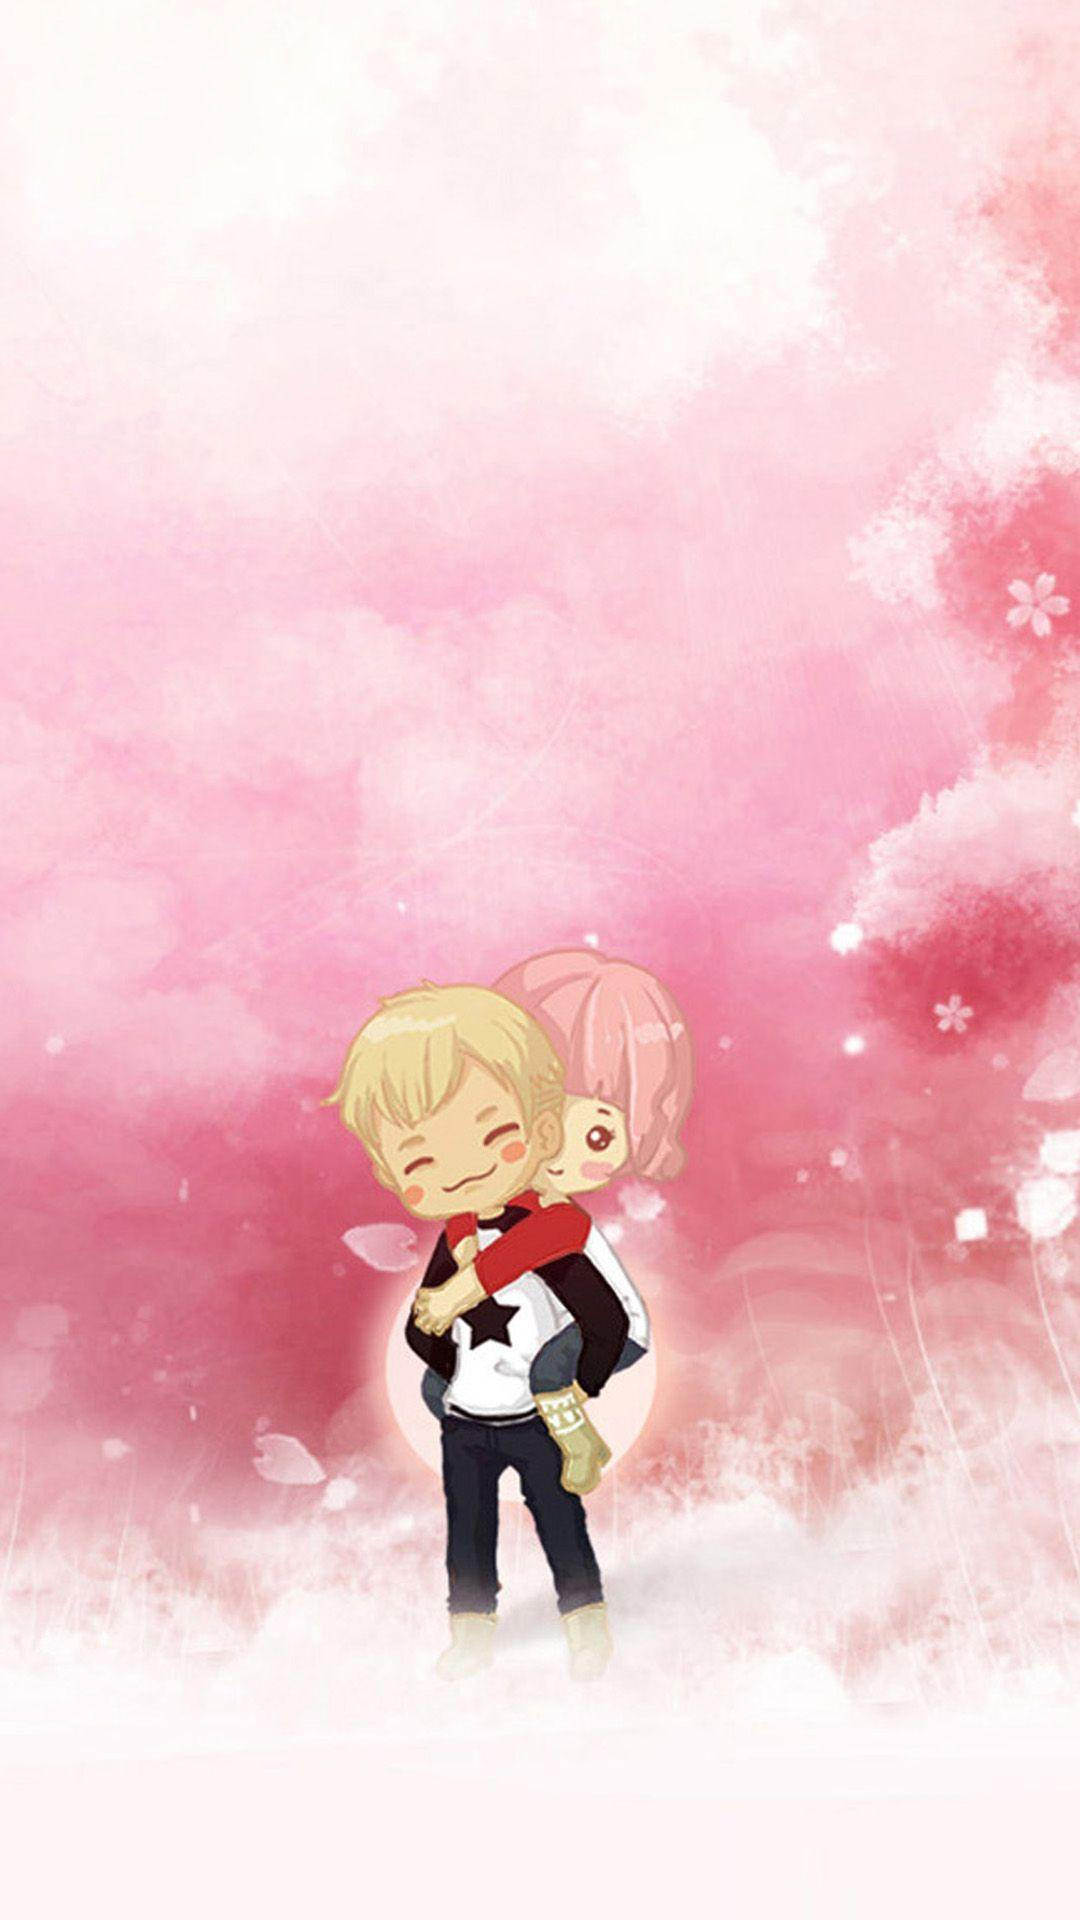 Cute Cartoon Couple Wallpapers For Mobile Wallpaper Cave